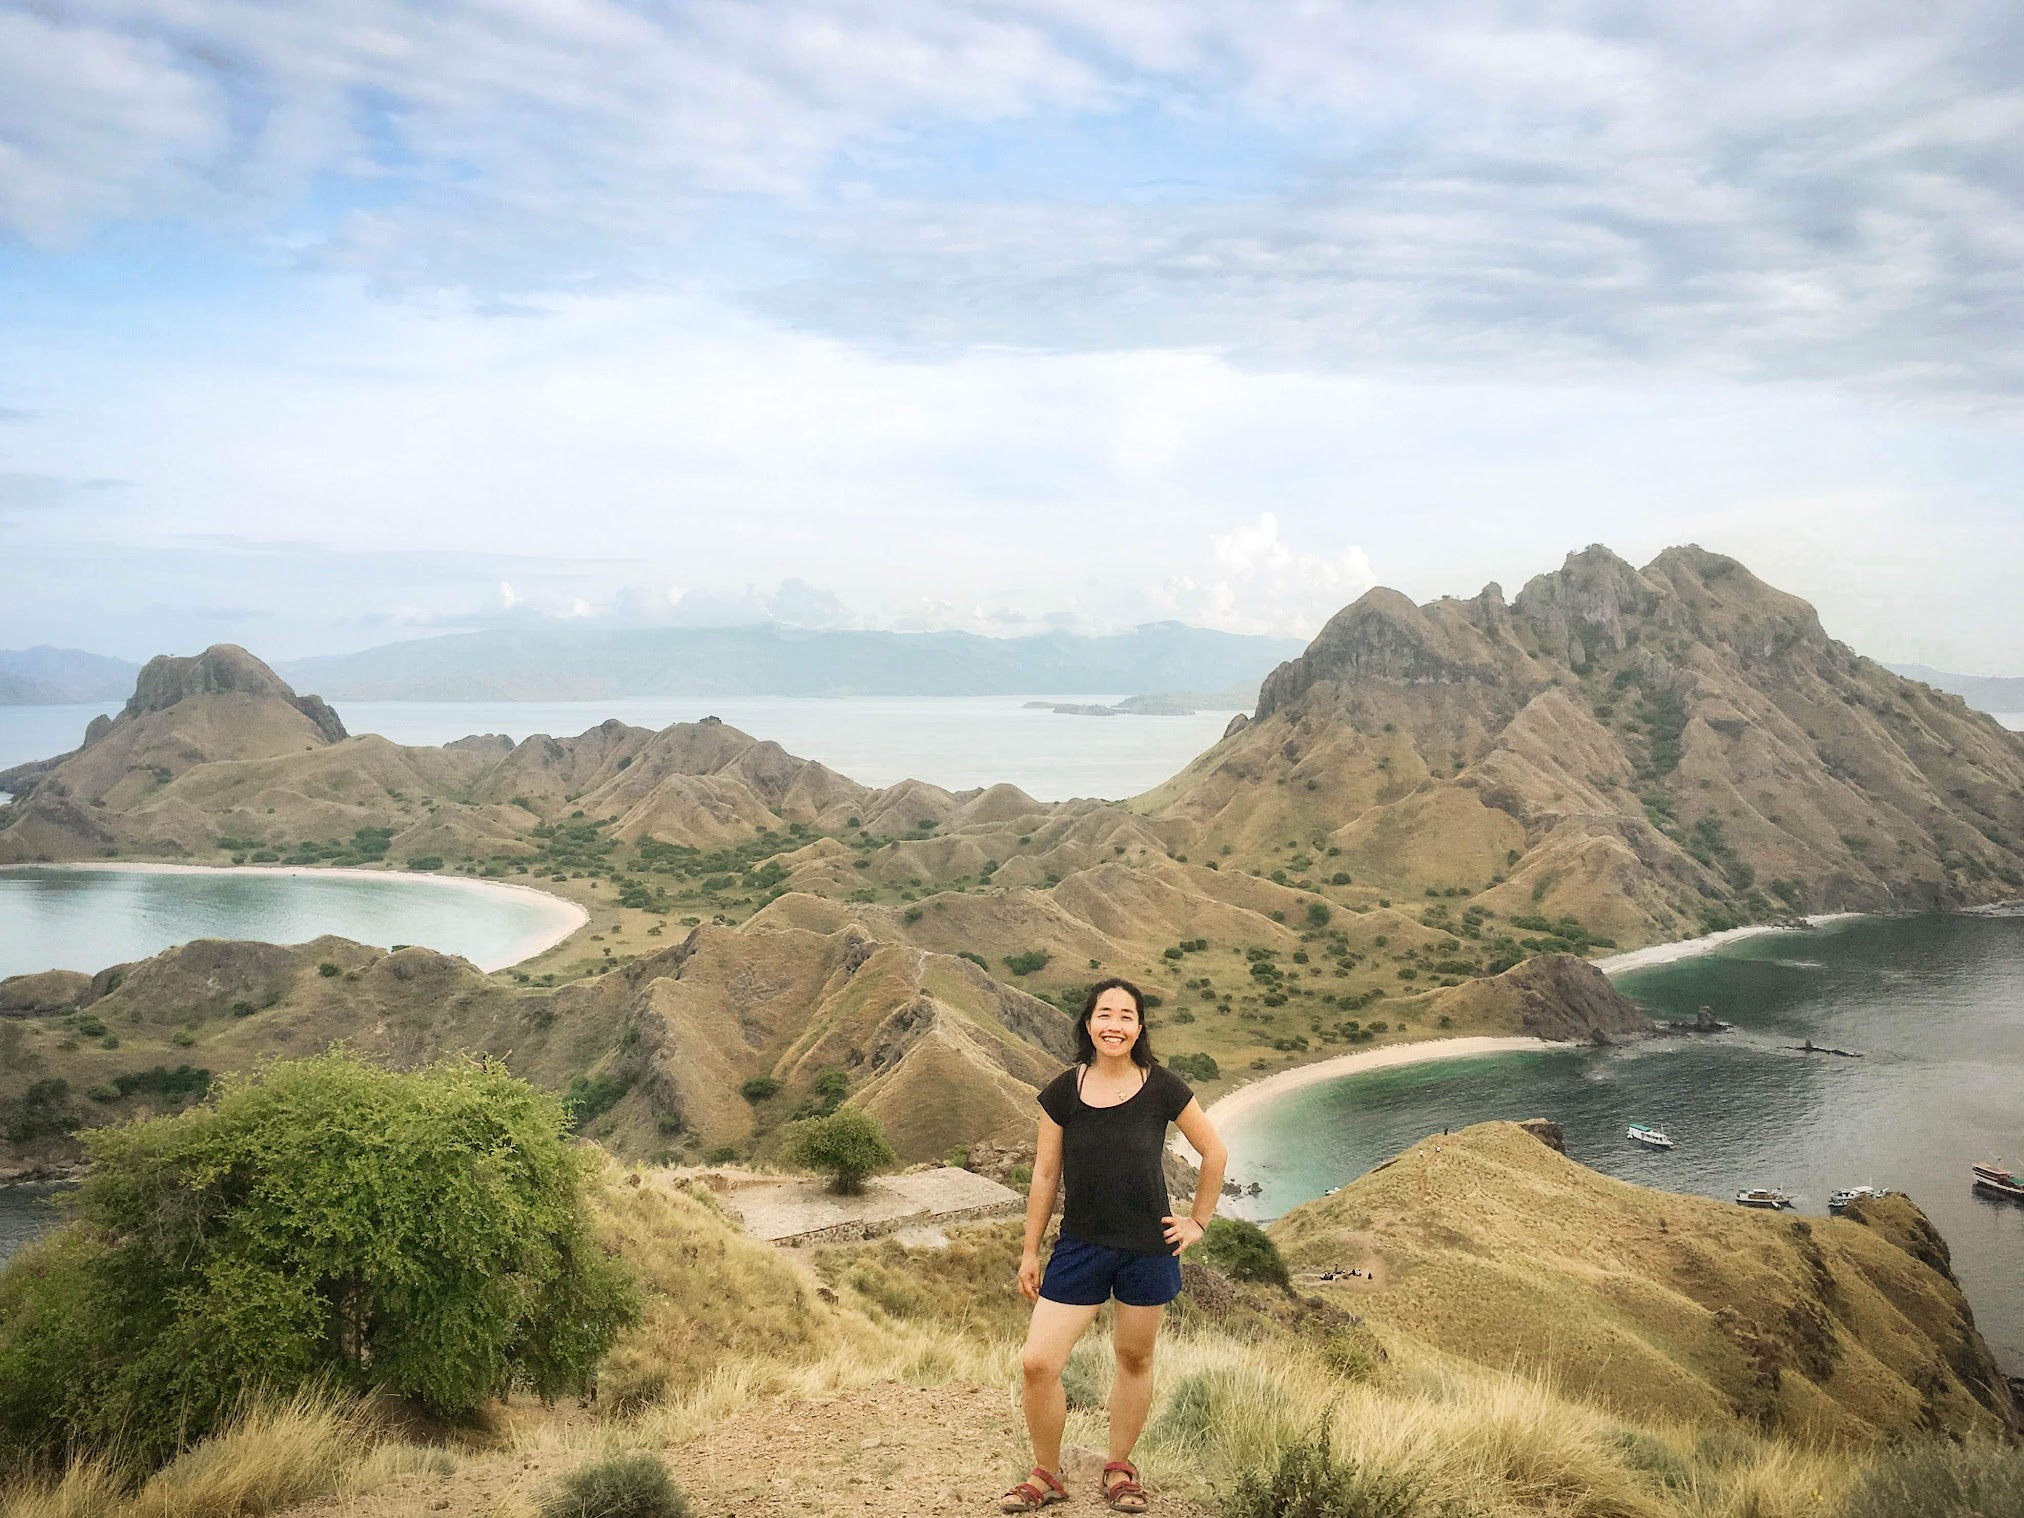 Insta-famous view of Padar Island, Indonesia. It was a sweaty uphill hike, but even after seeing this view on the Internet, it still blew my mind.